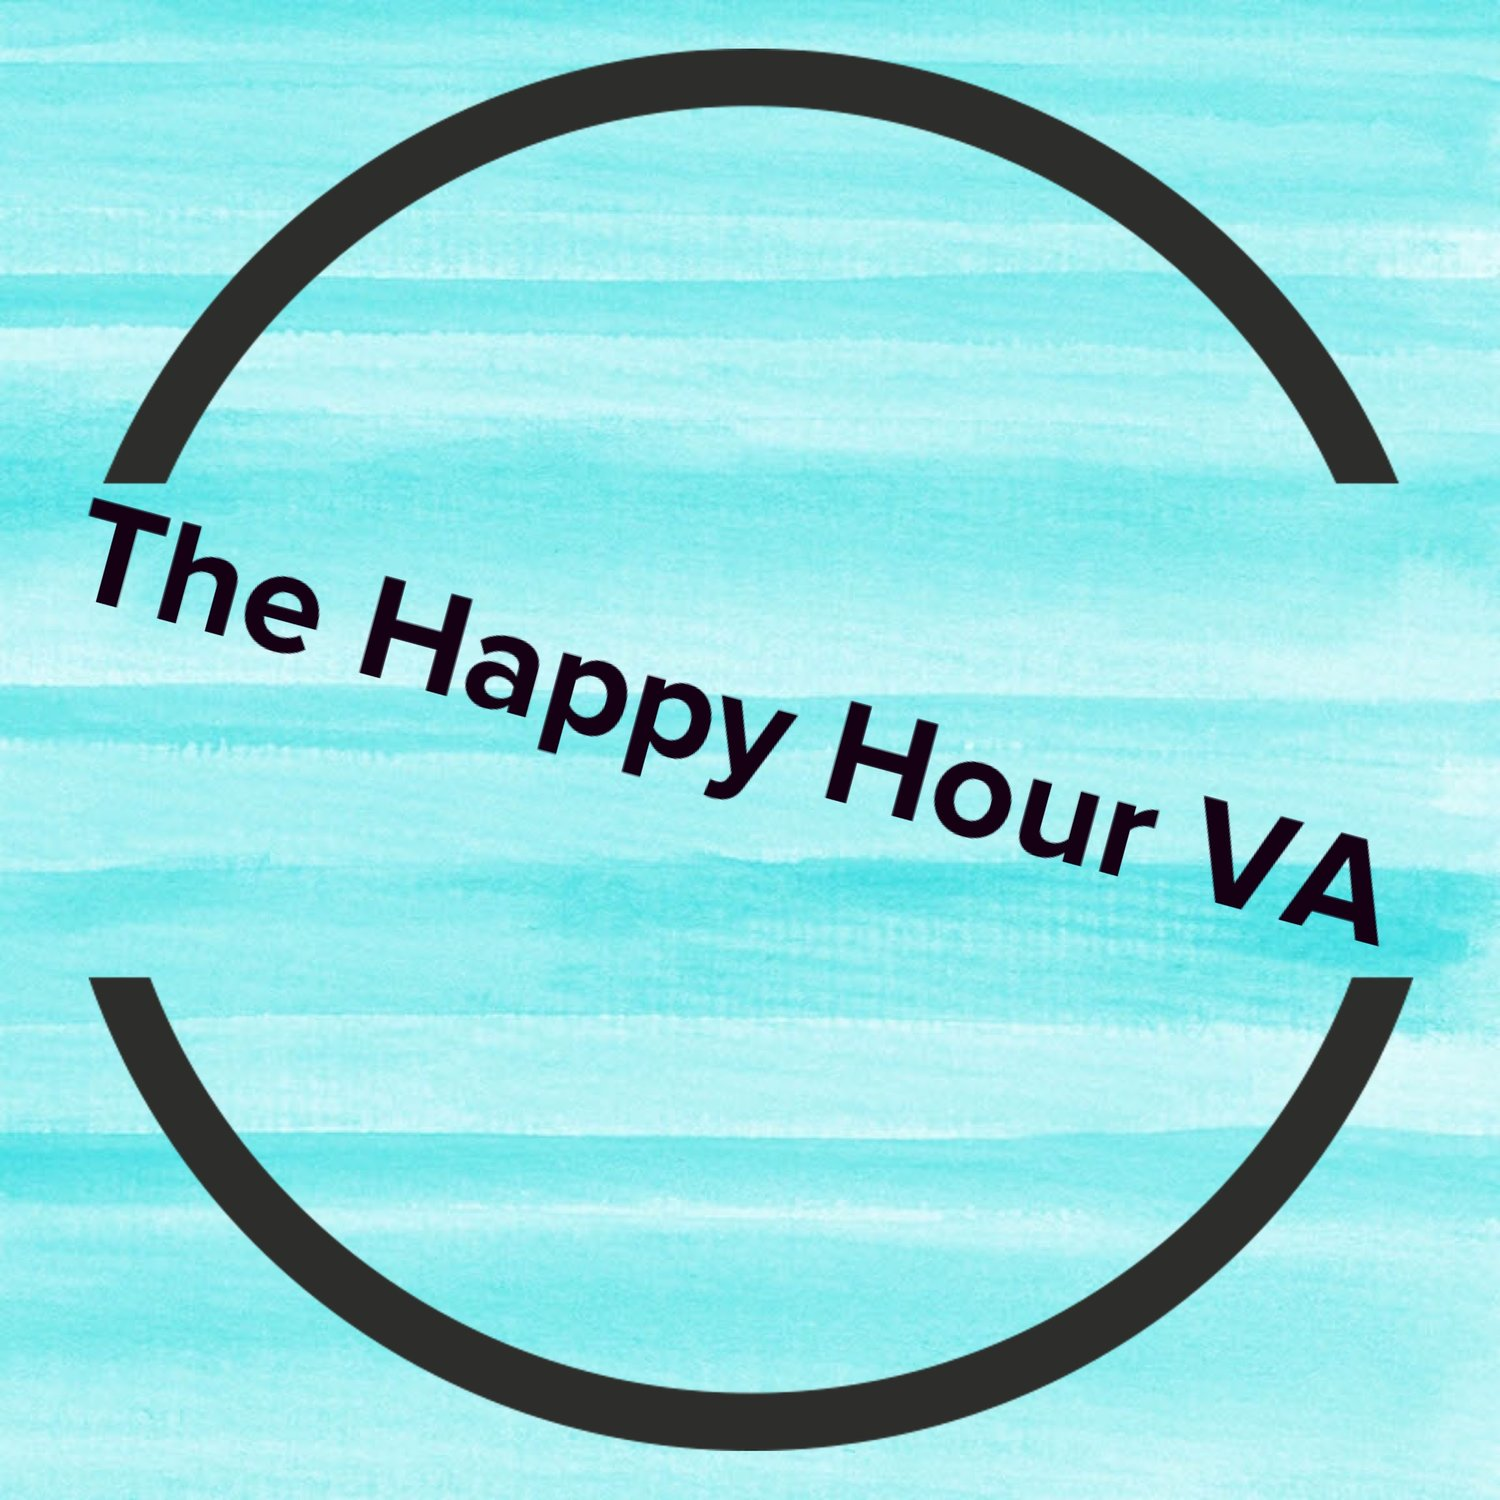 The Happy Hour VA